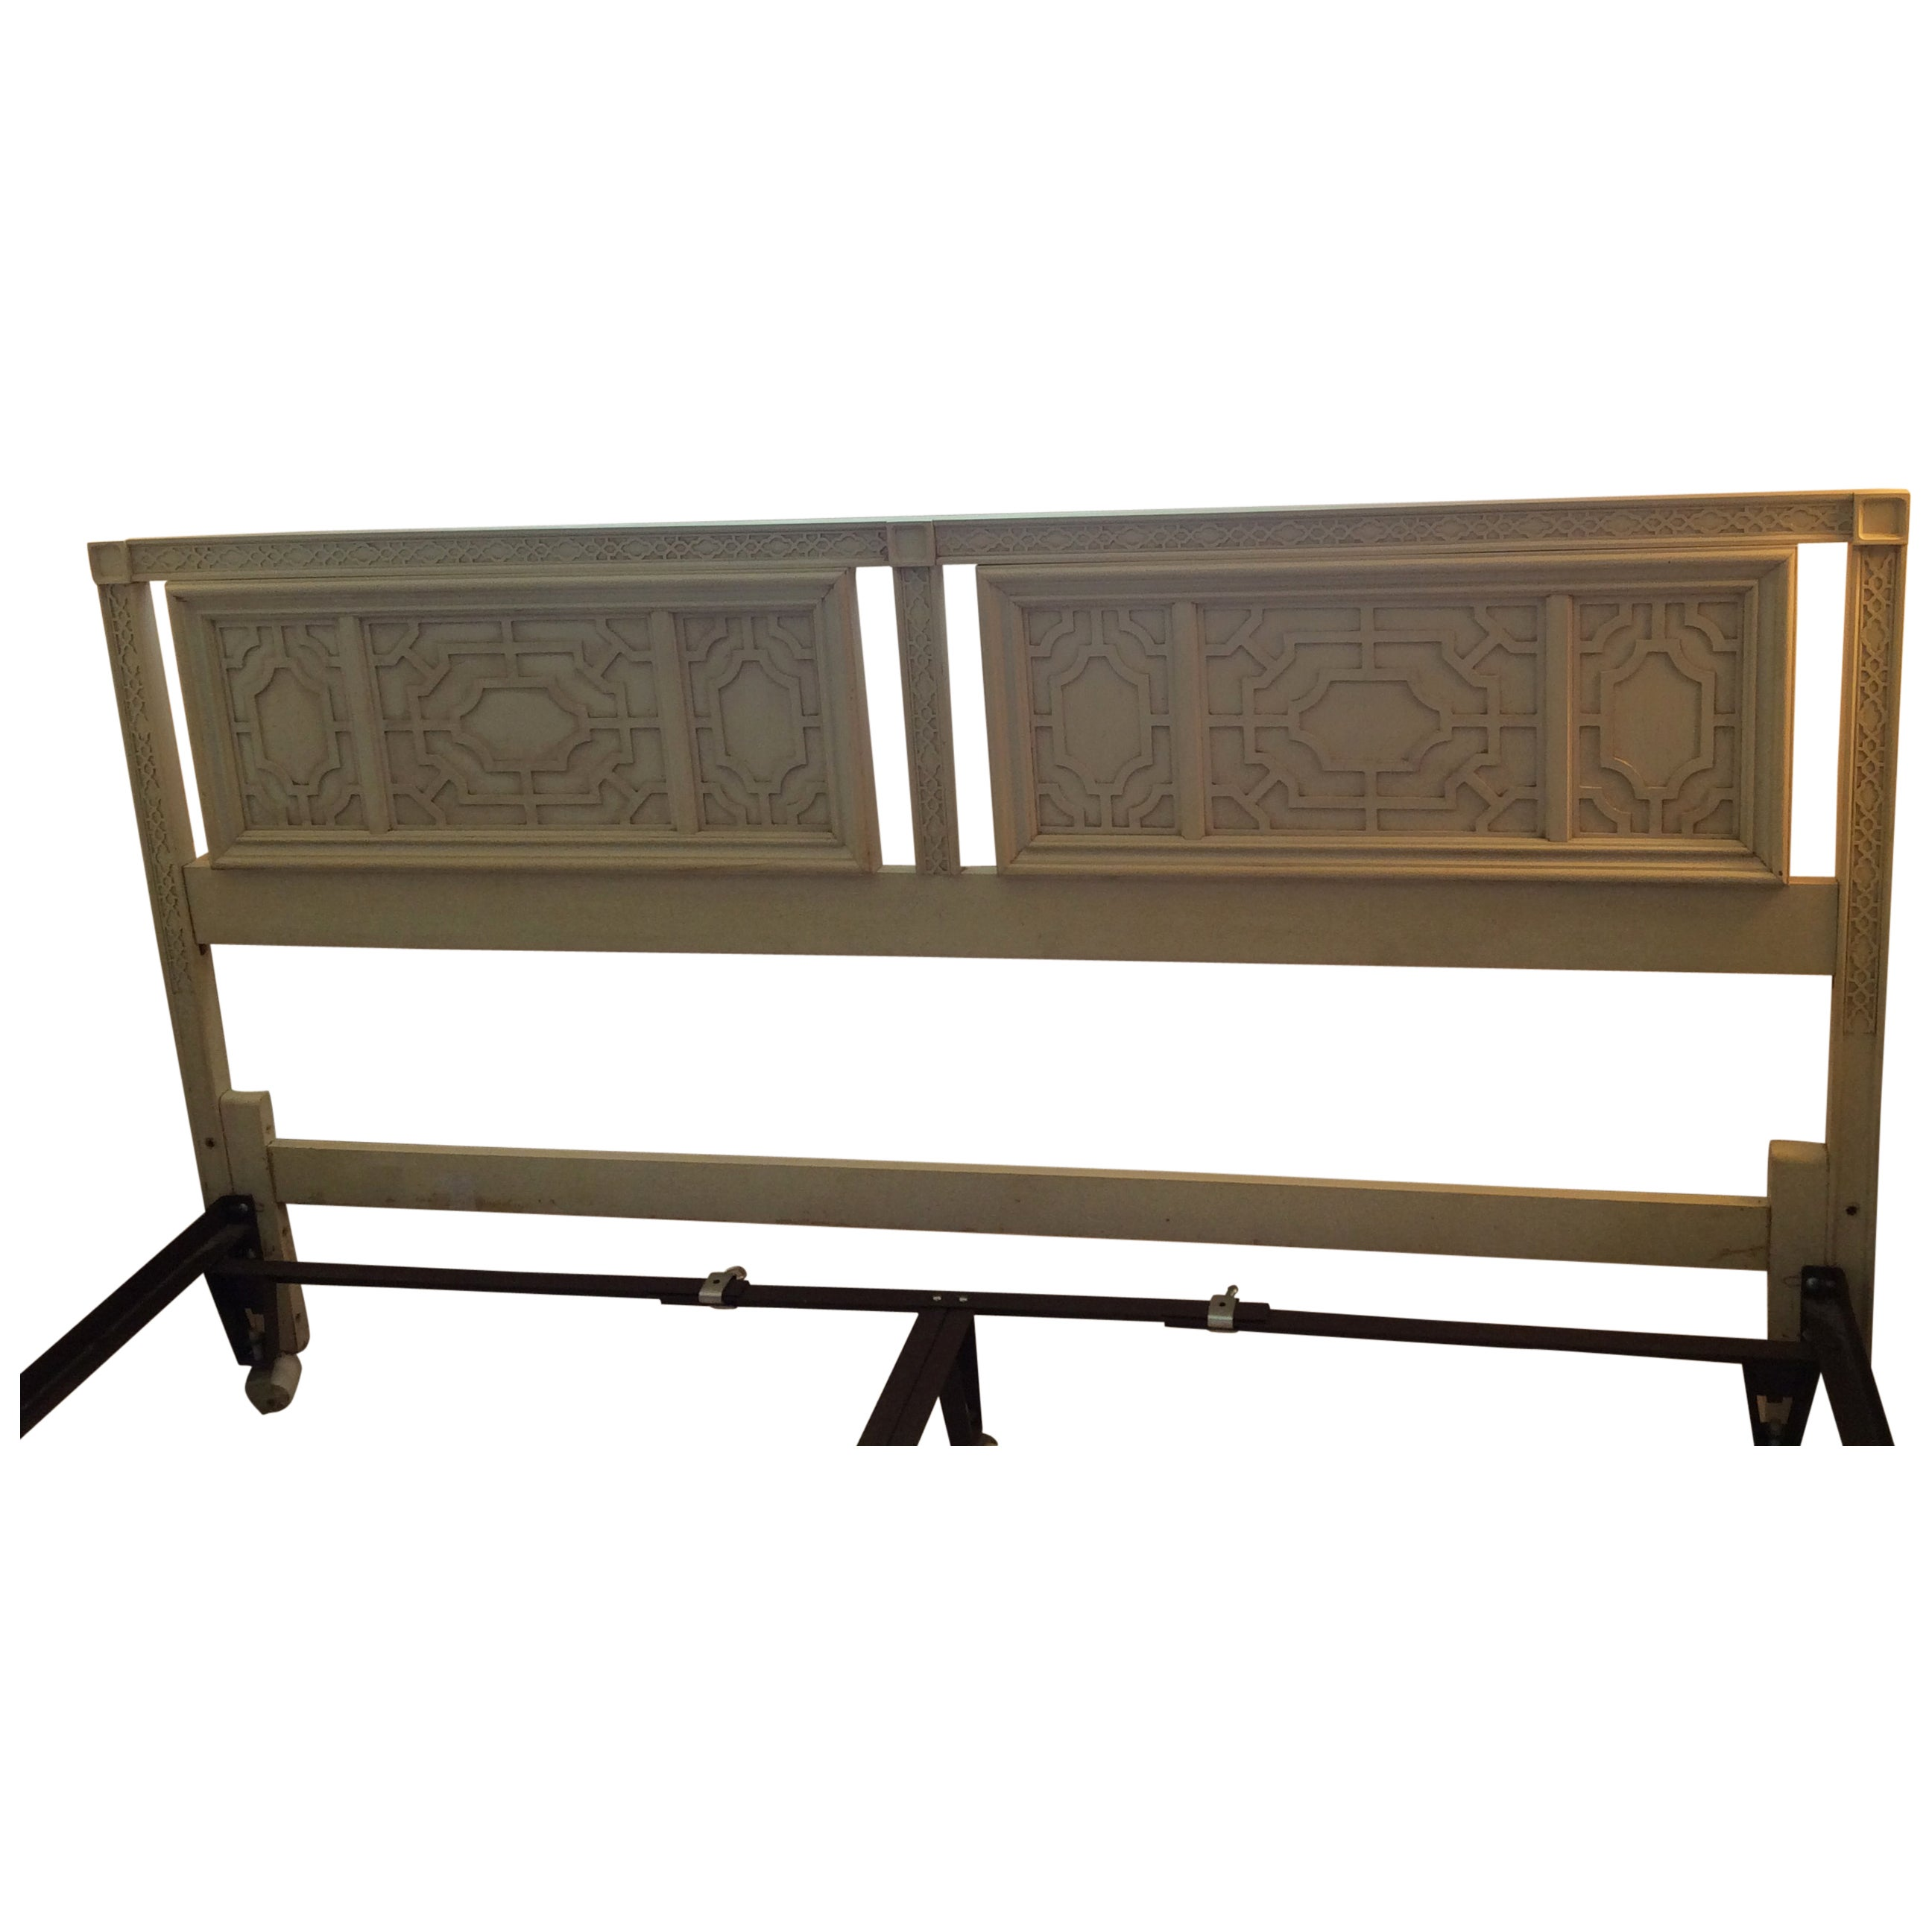 Thomasville Headboard Vintage King Size Fretwork Chinese Chippendale